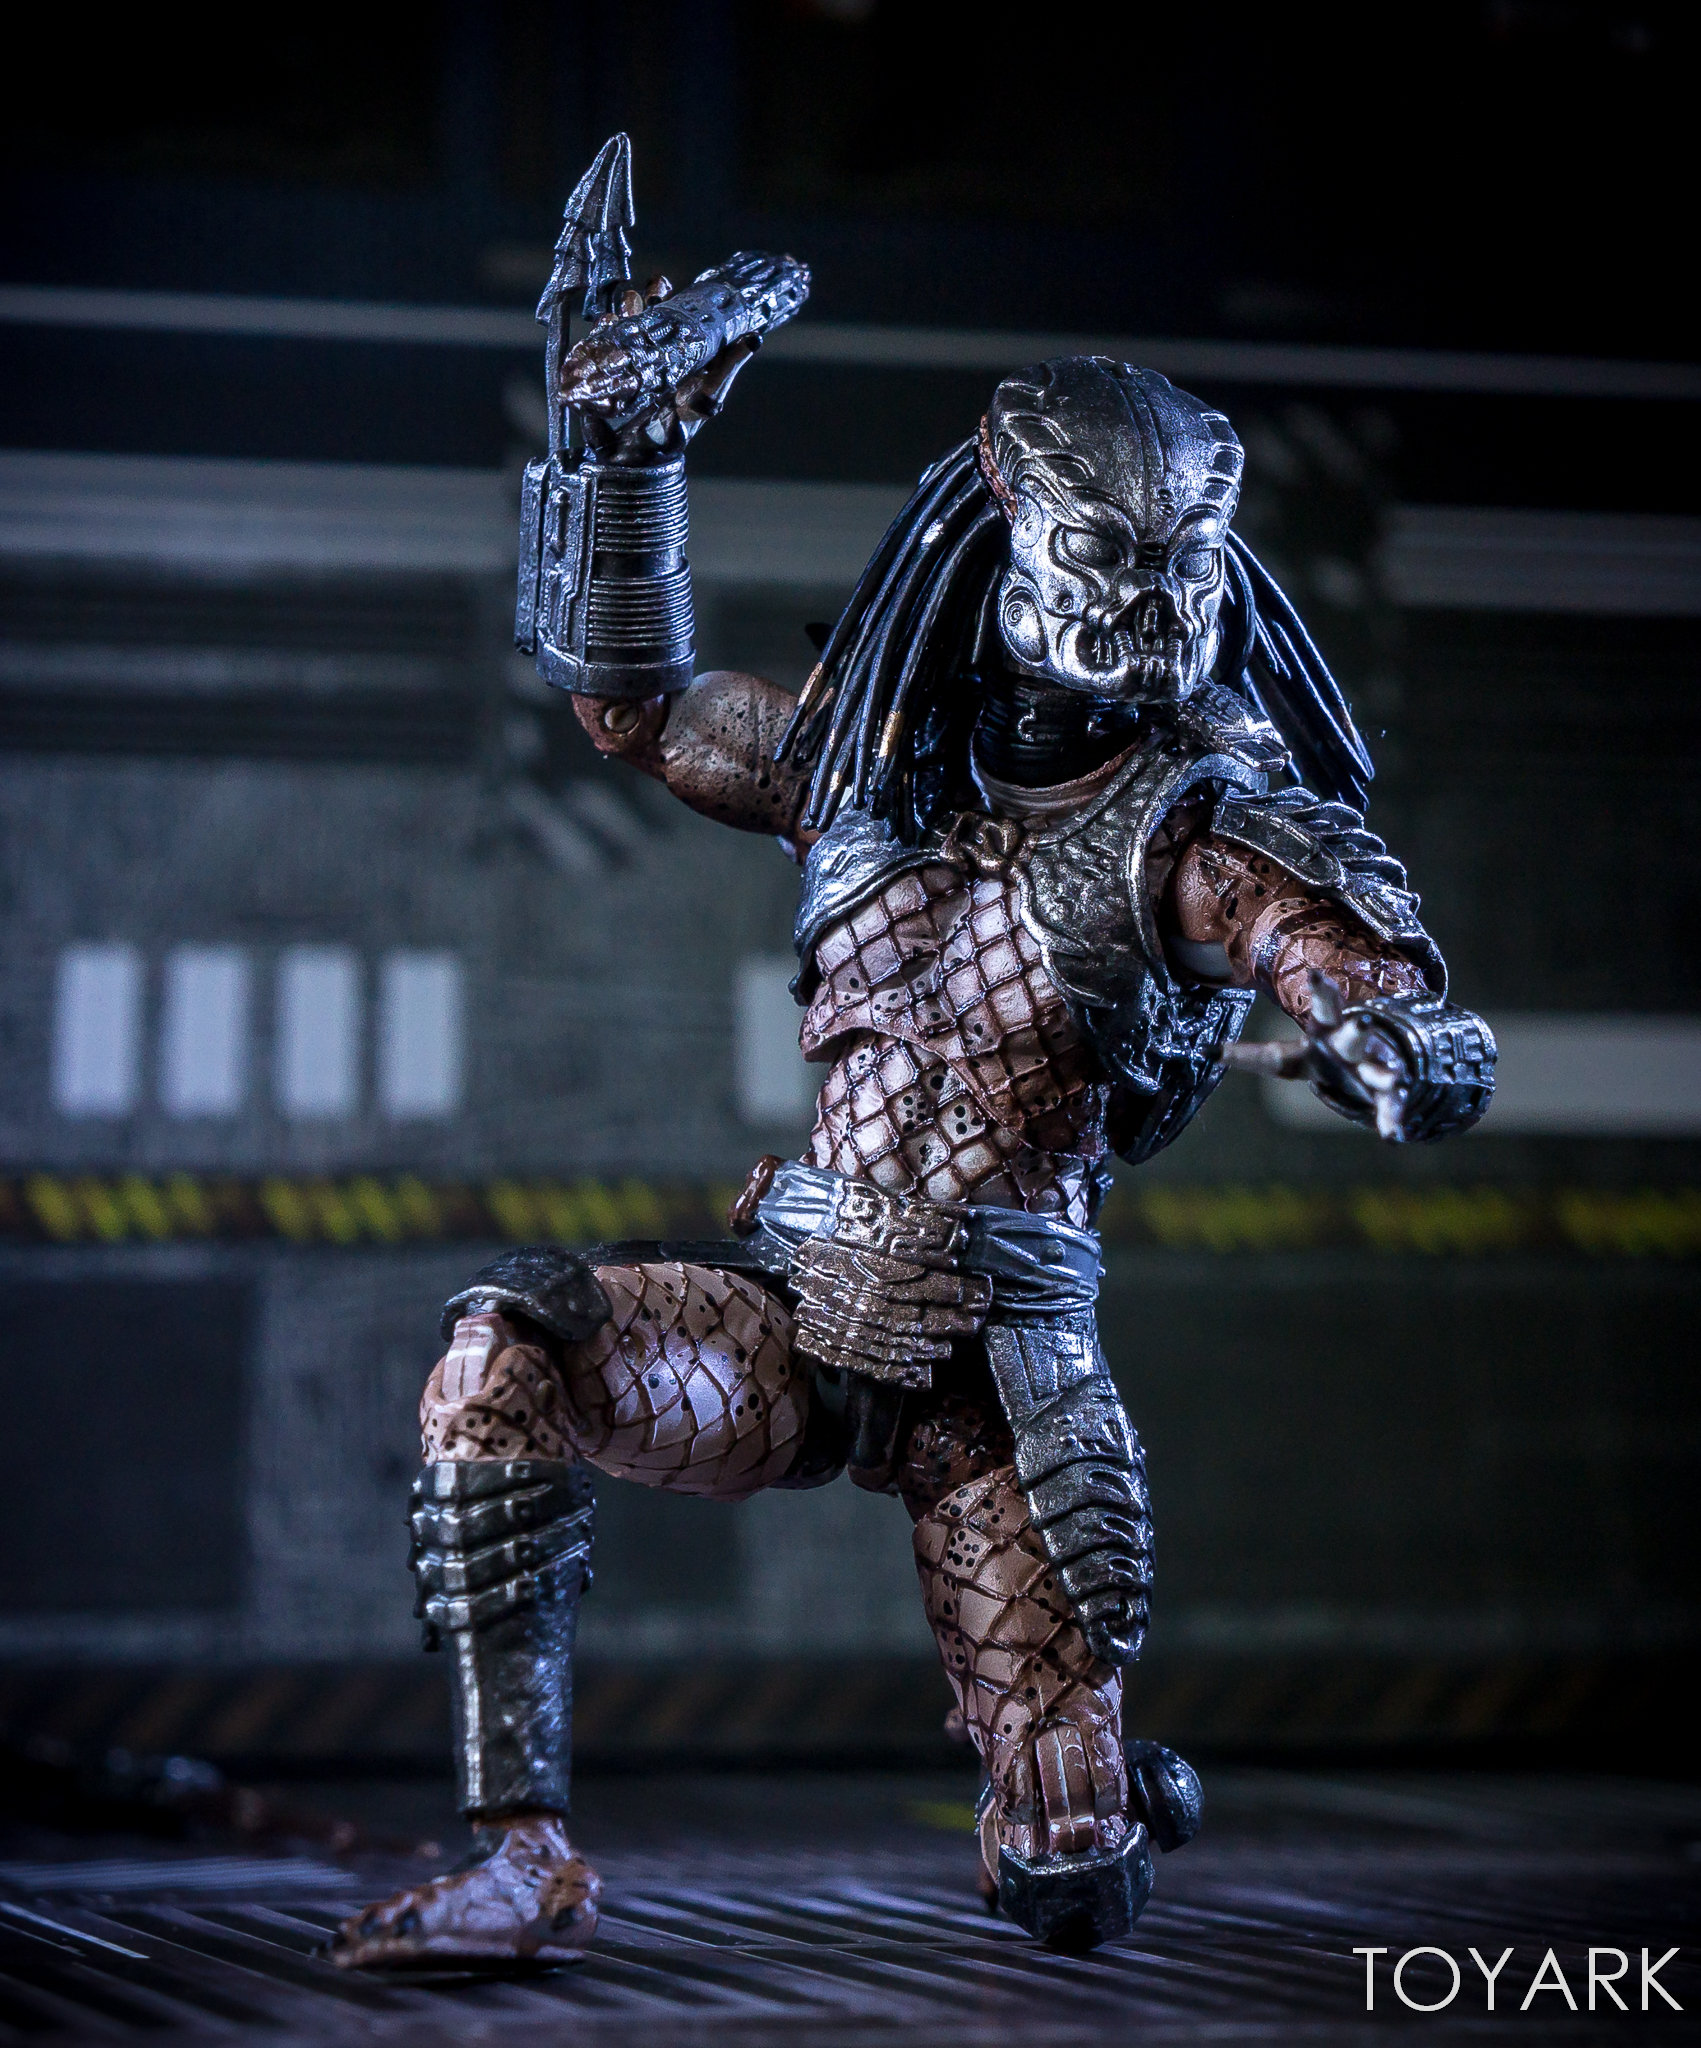 http://news.toyark.com/wp-content/uploads/sites/4/2018/03/Hiya-Predator-2-Figures-037.jpg